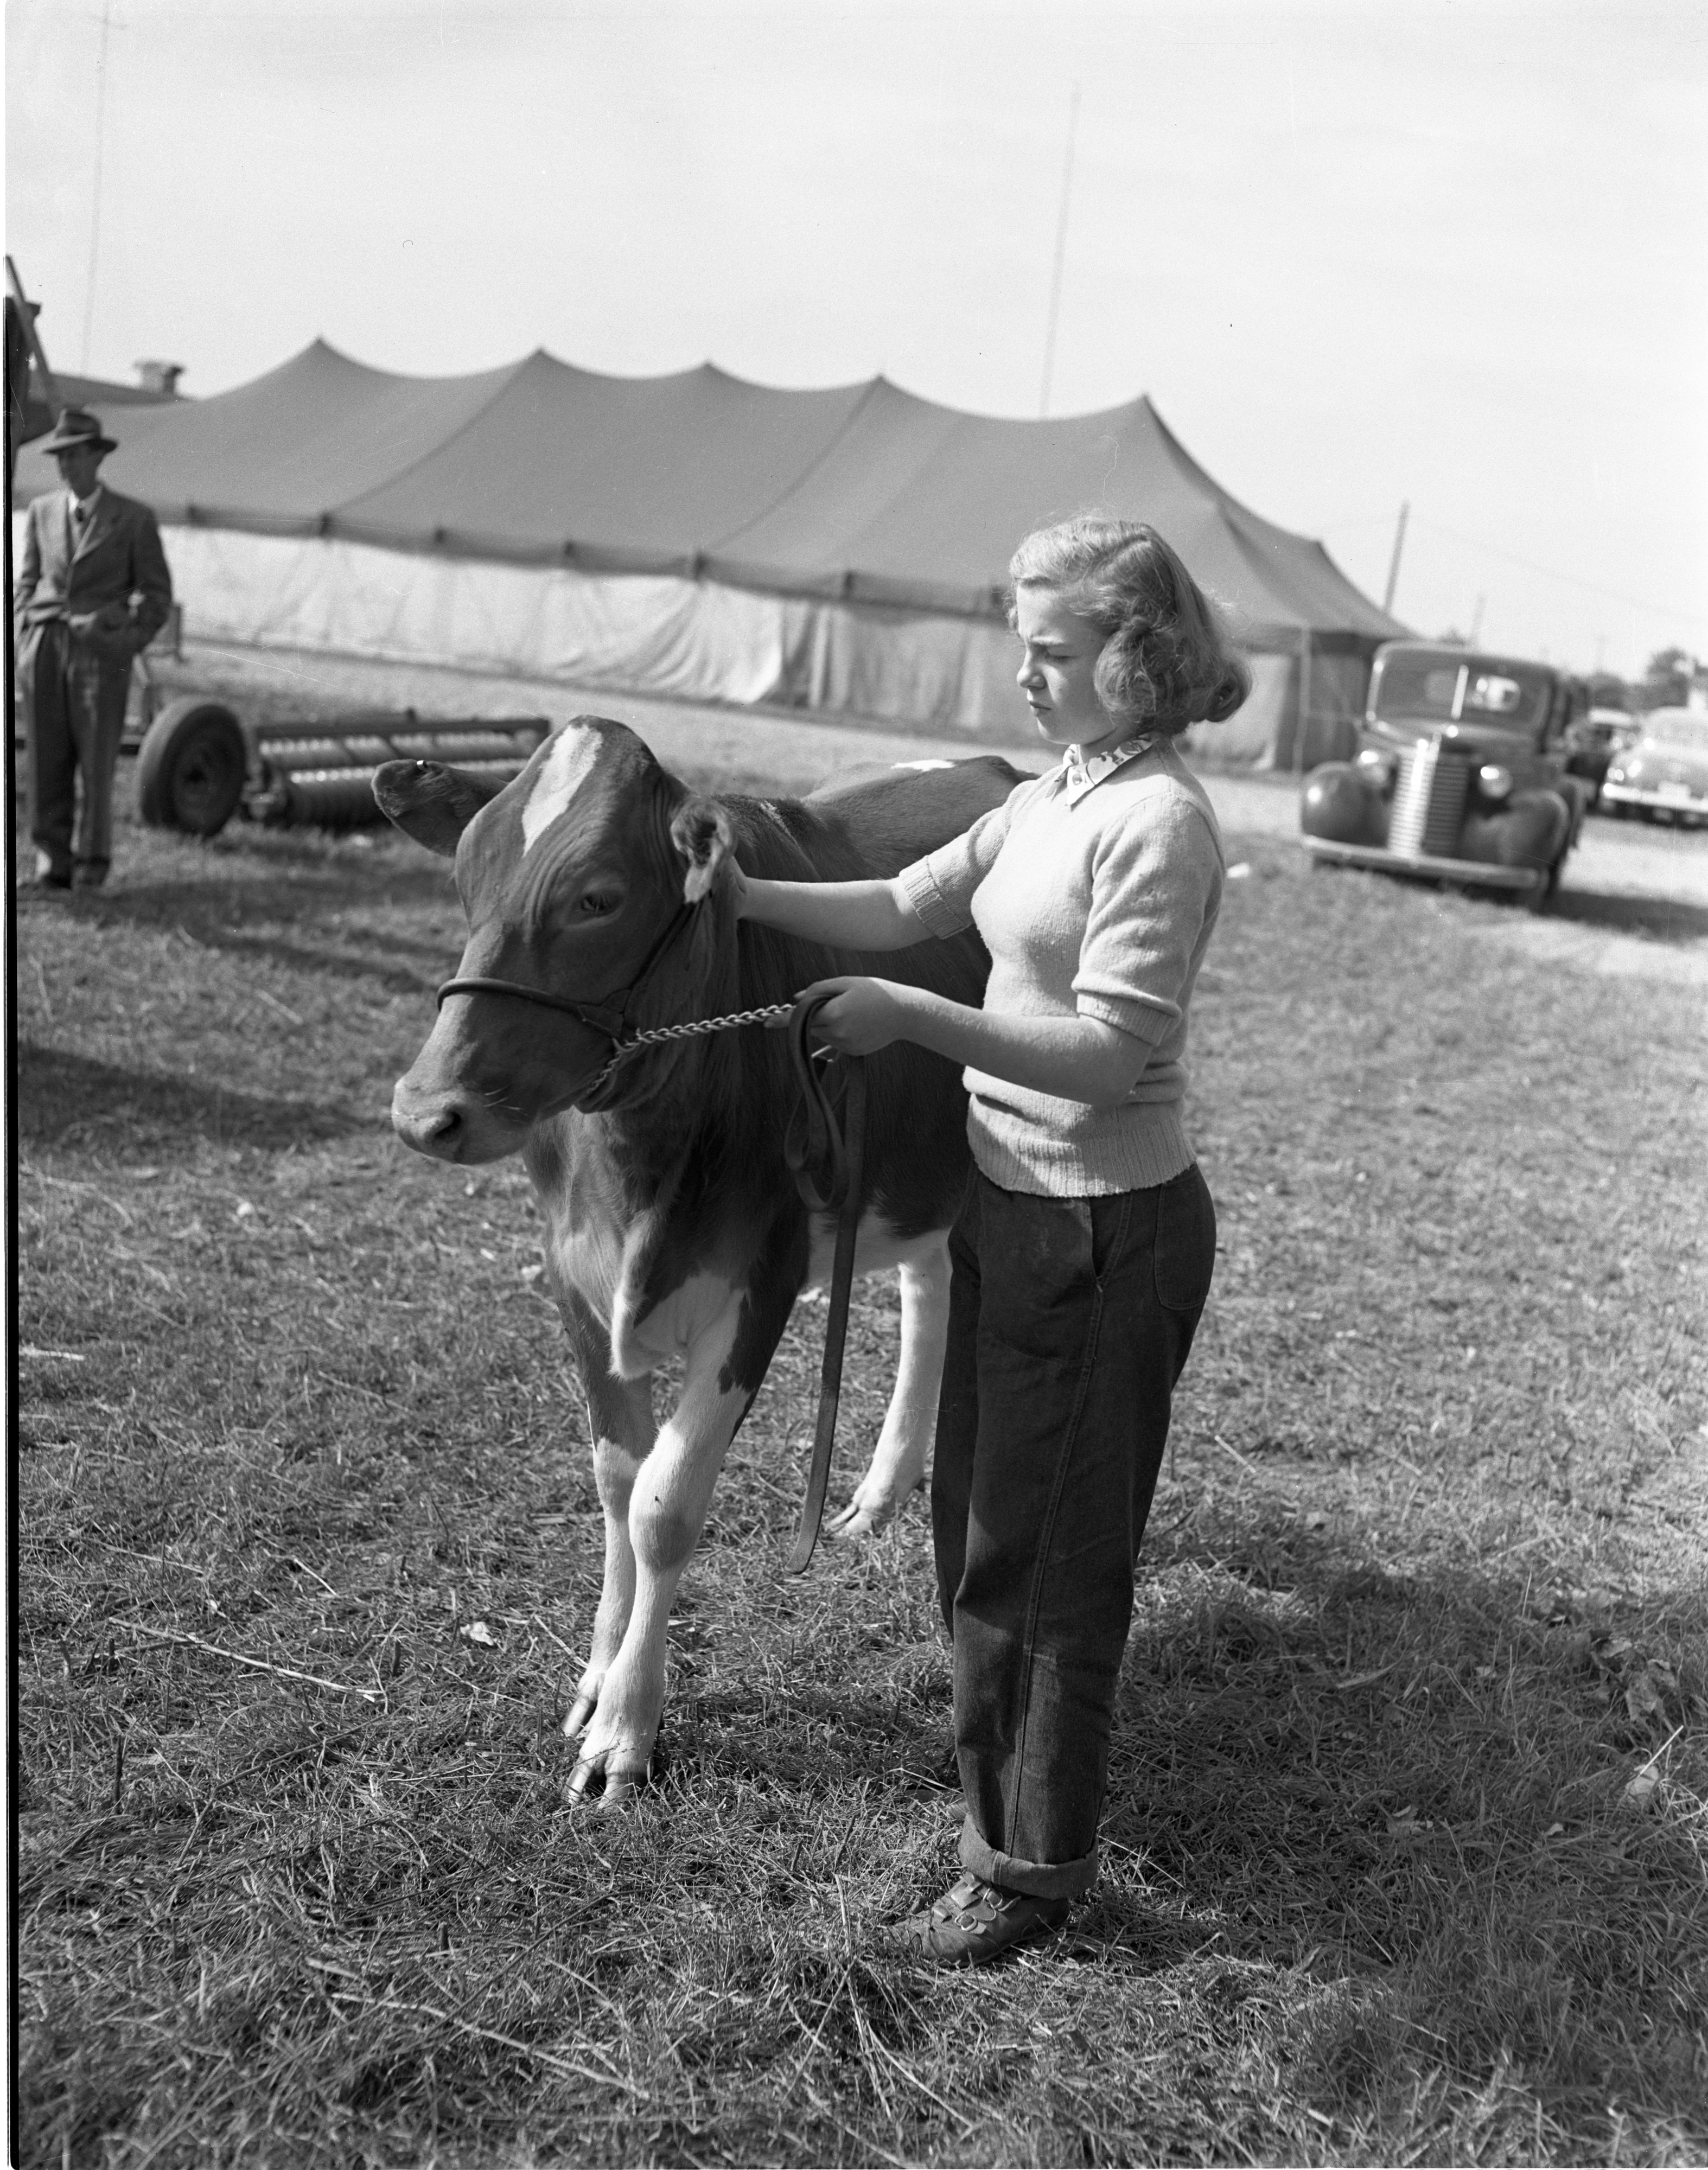 Audrey Haab With Her Cow At The Chelsea Community Fair, October 1950 image